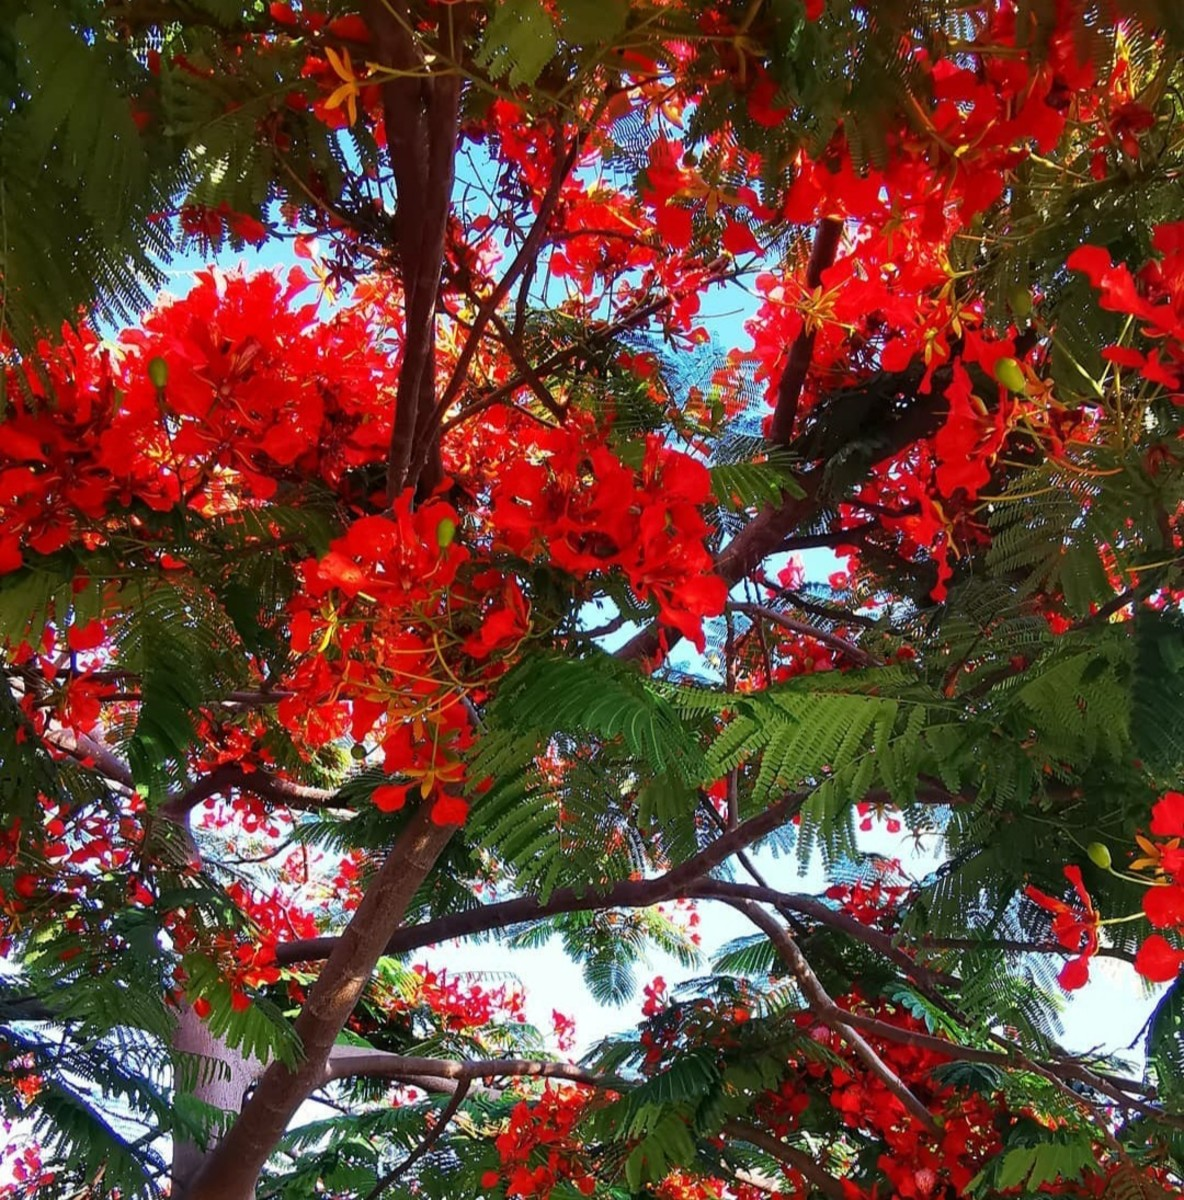 Flower in Flame tree | Archana Das